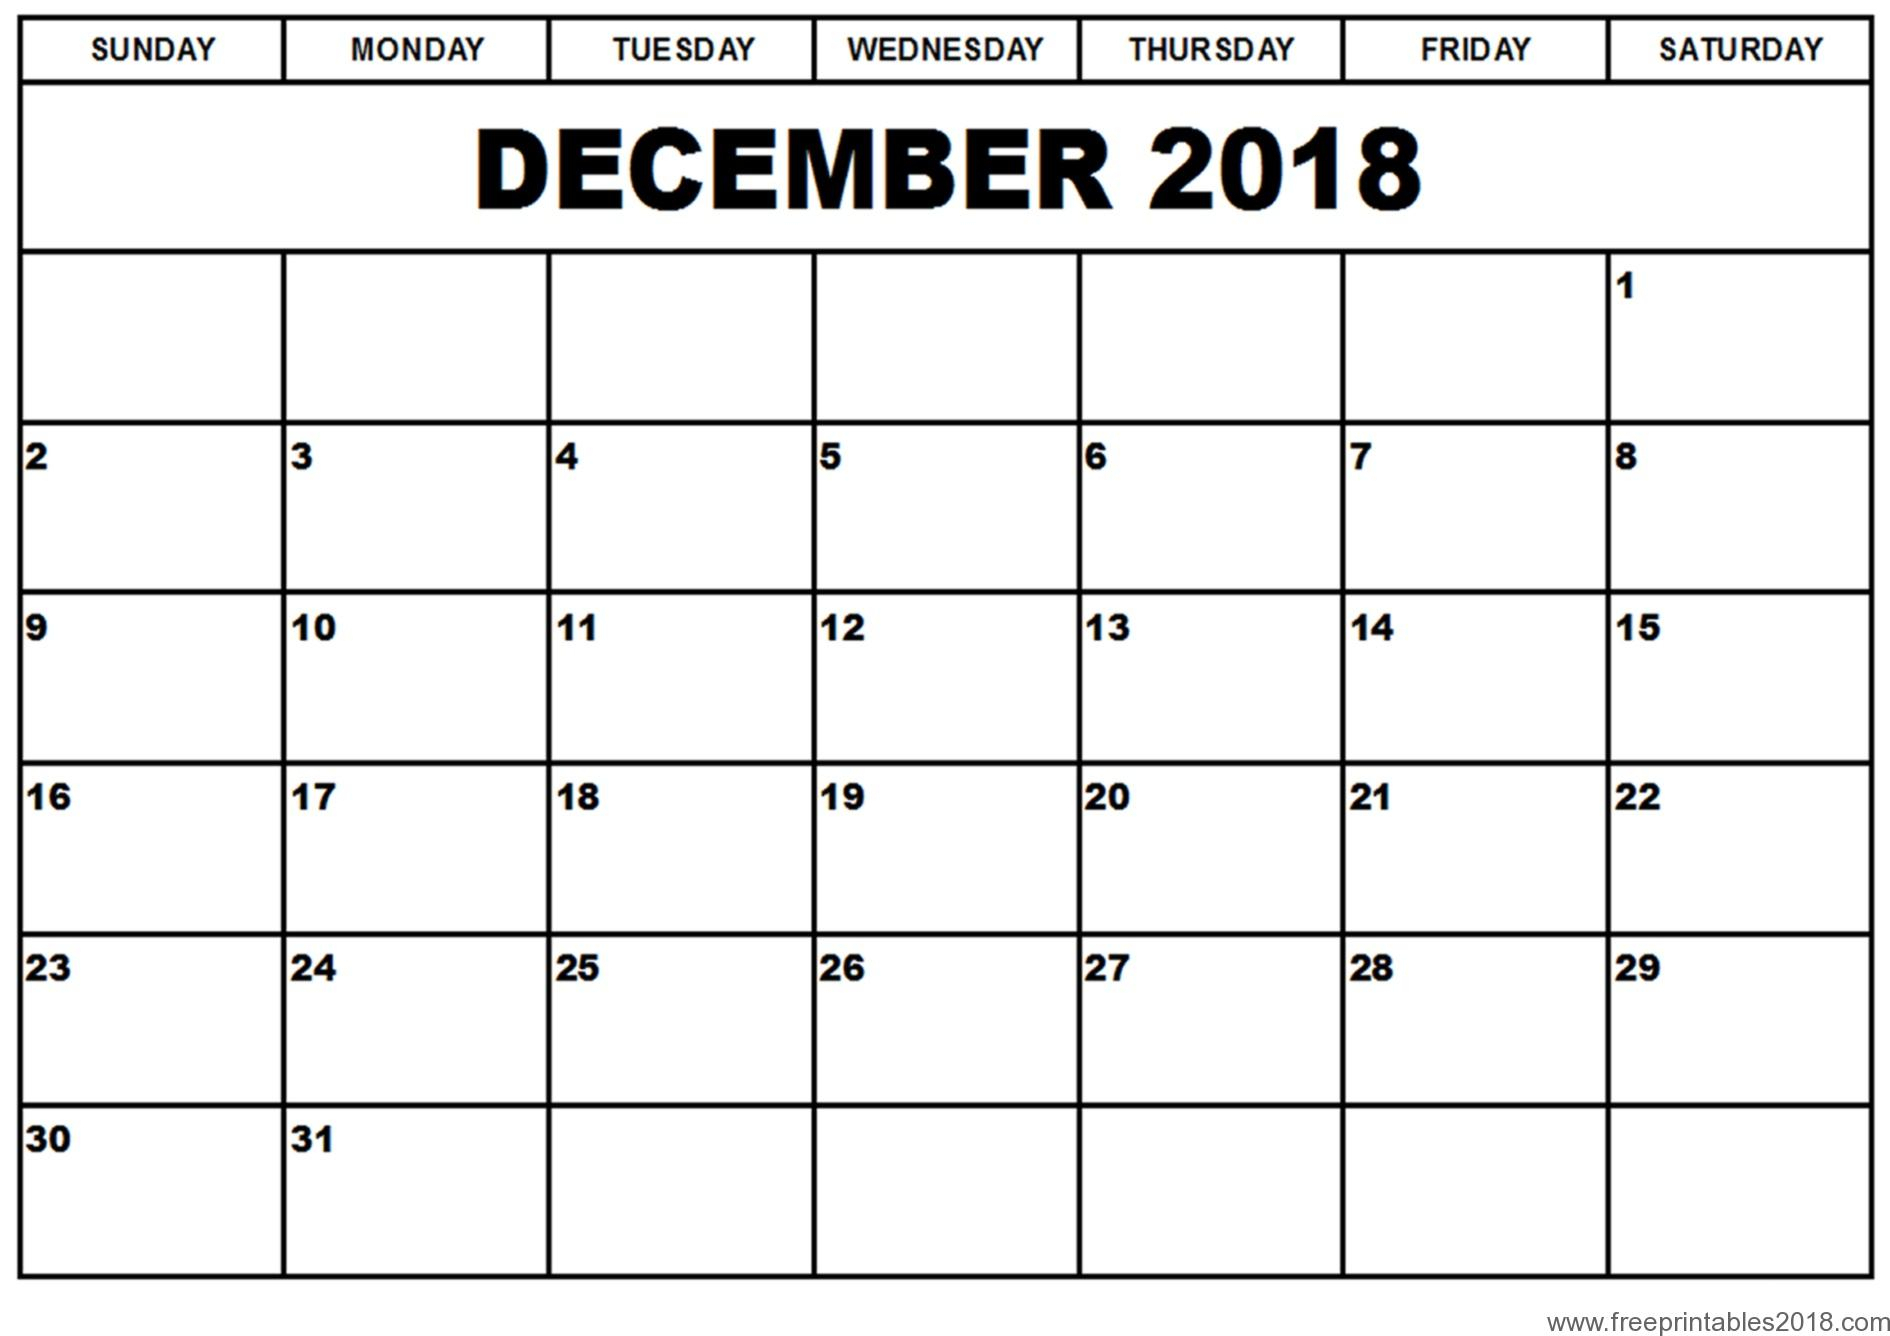 Free Printable Calendar December 2018 | Free Printables 2019 pertaining to Blank Calendar Page December